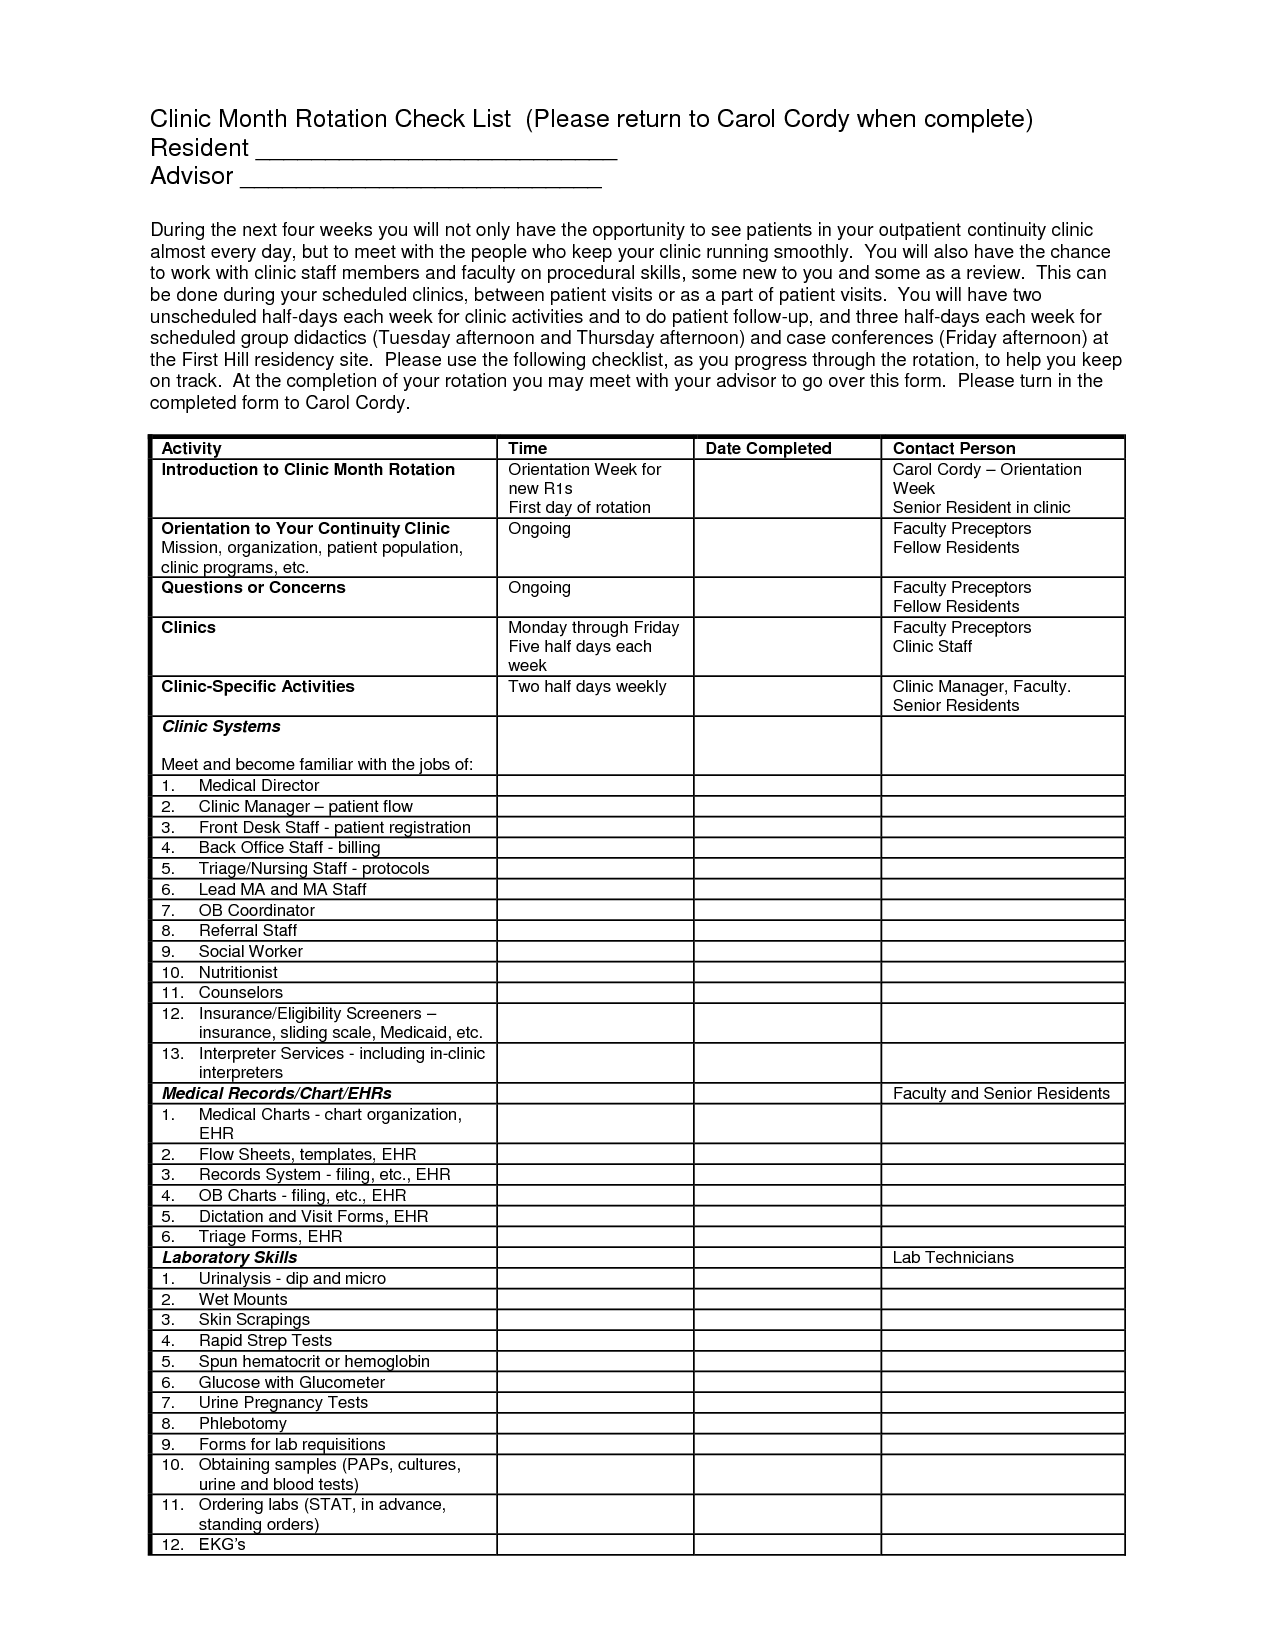 Nursing Flow Sheet